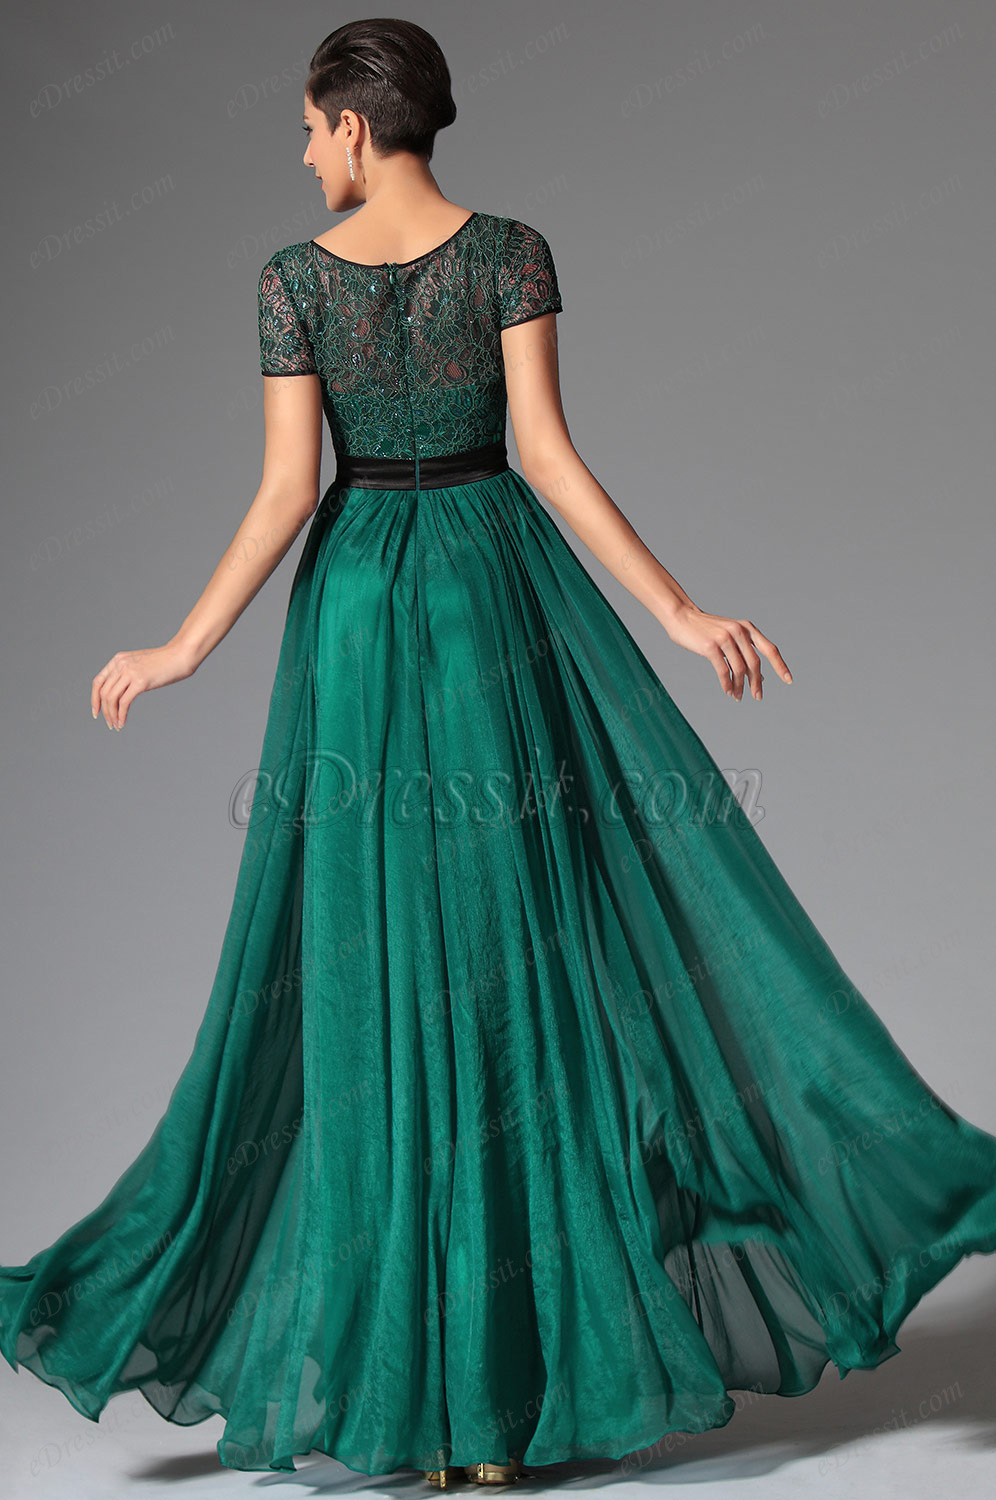 Edressit Dark Green Short Sleeves Evening Dress Prom Dress